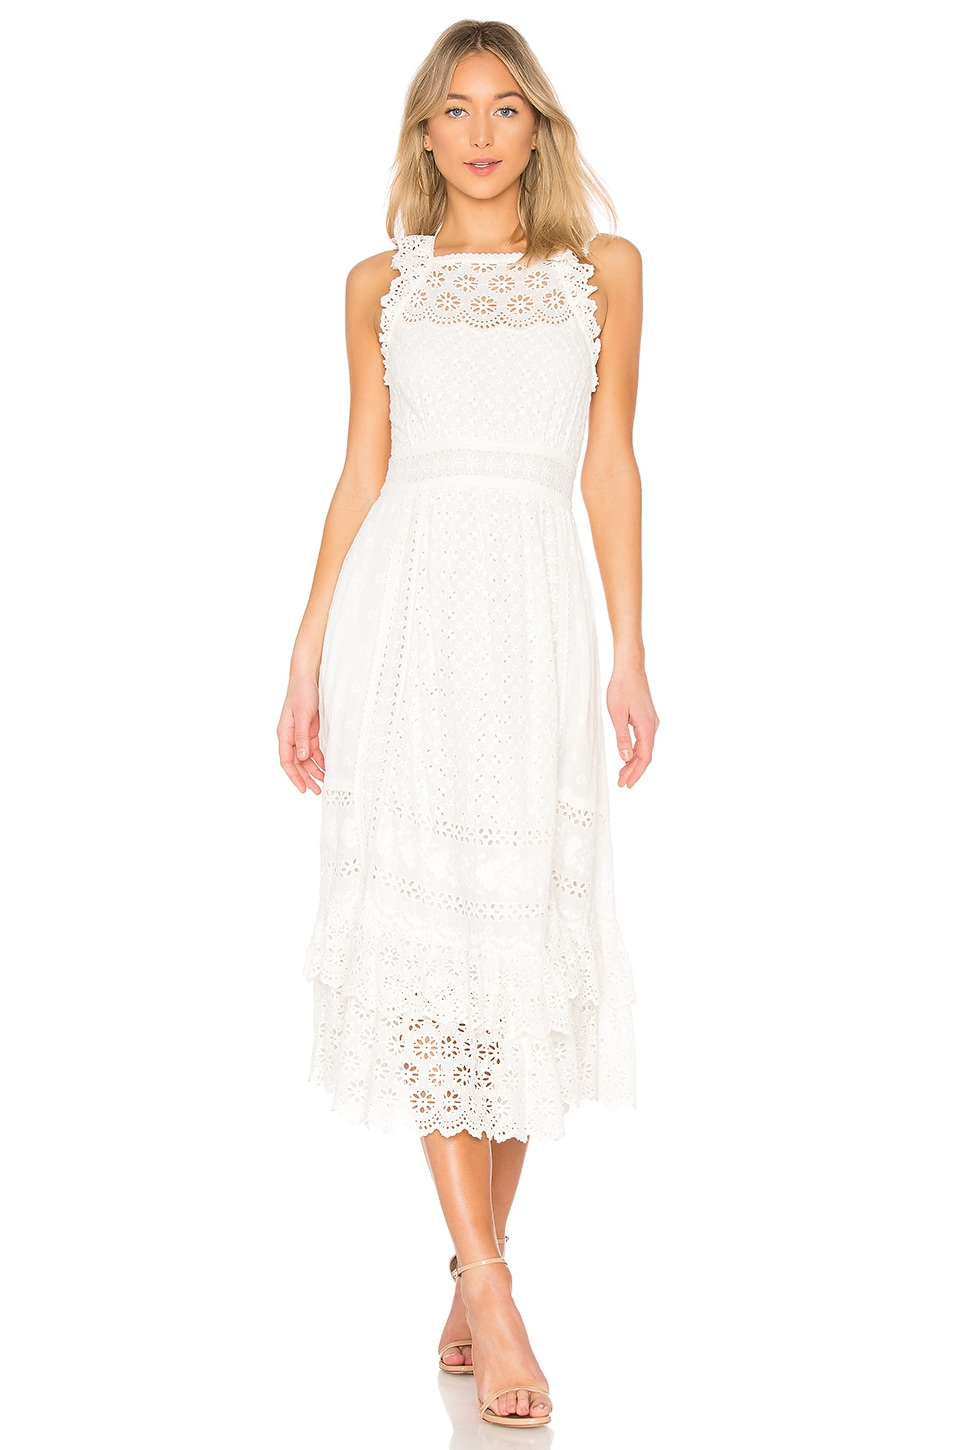 Willow Ruffled Broderie Anglaise Cotton Midi Dress - White Ulla Johnson HdxOYuL